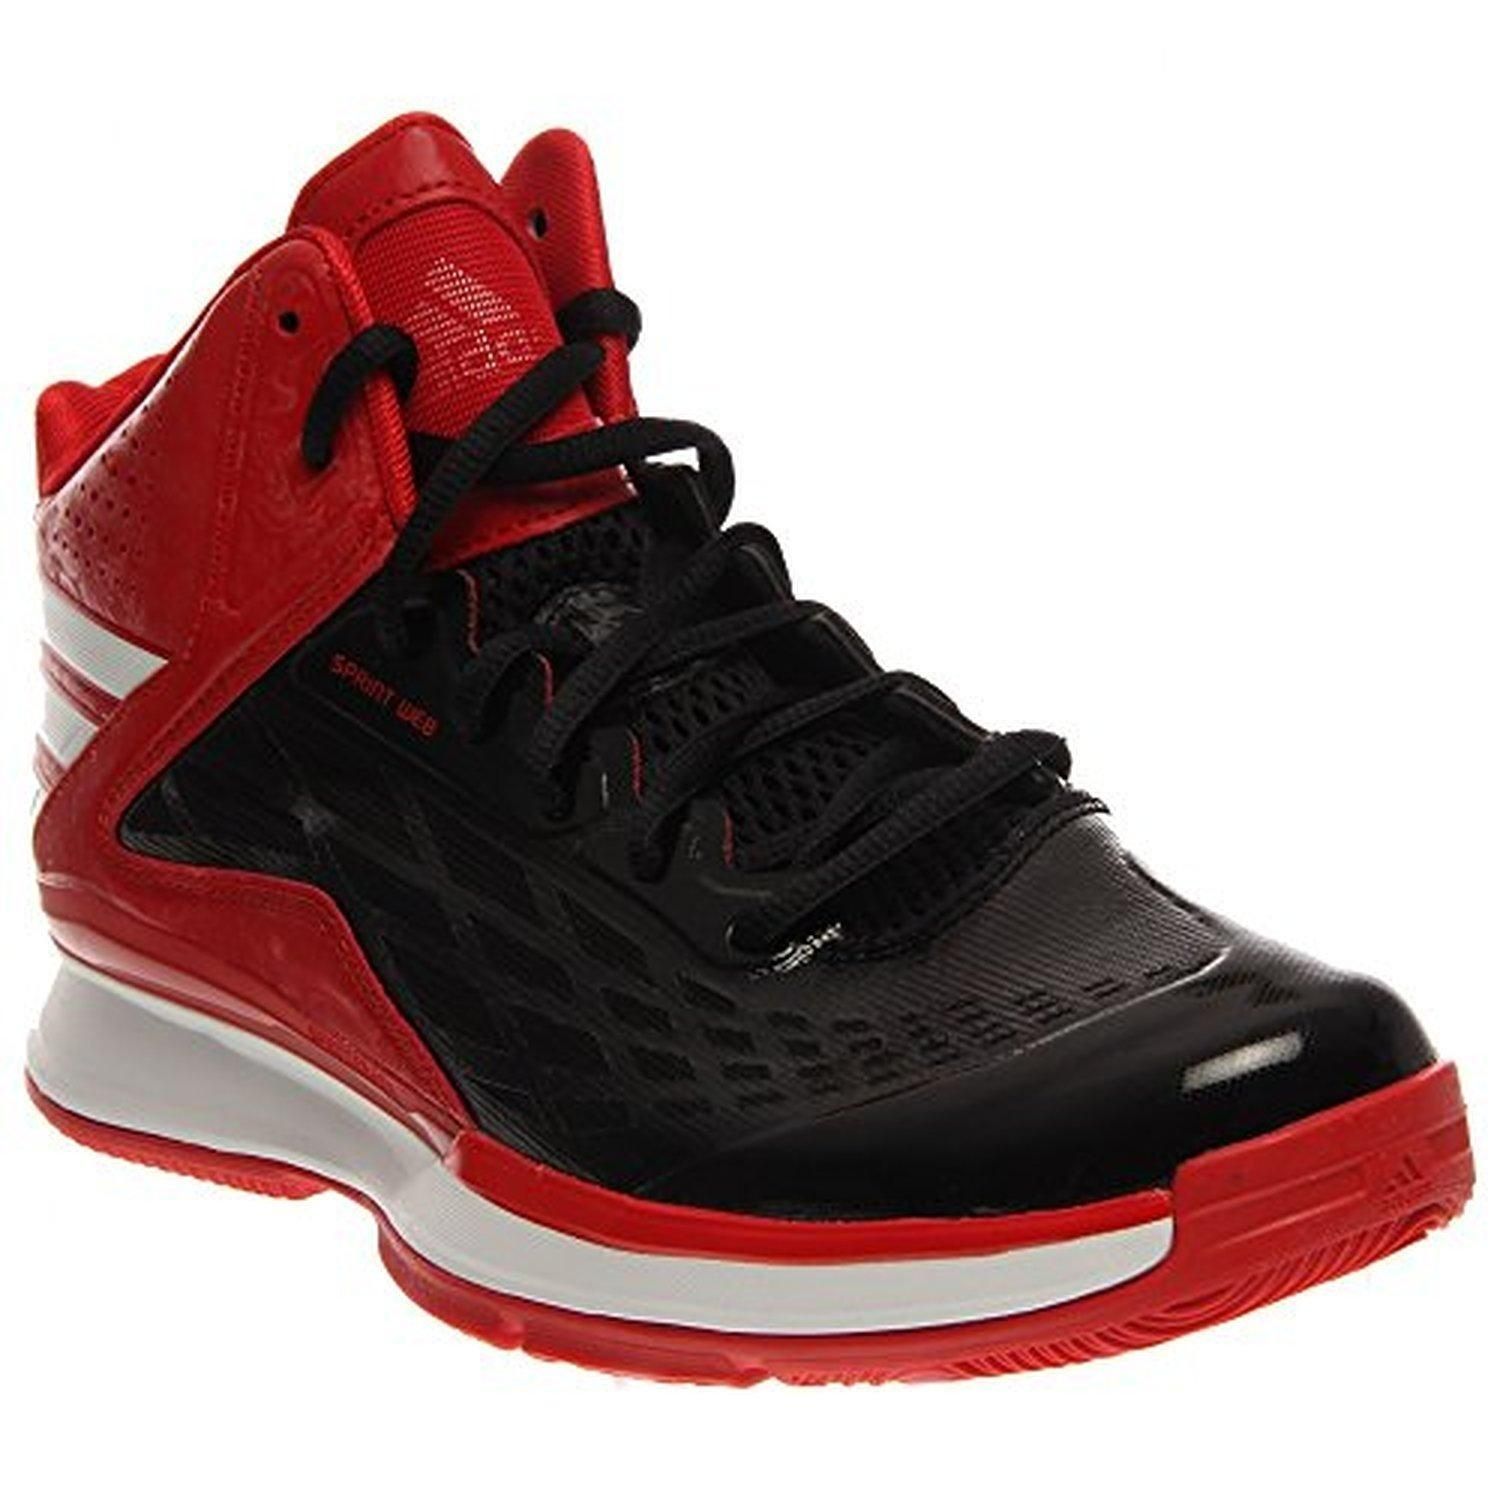 info for 13f99 a65ec Adidas Transcend Mens Basketball Shoe 8.5 Black-White-Scarlet - Brought to  you by Avarsha.com